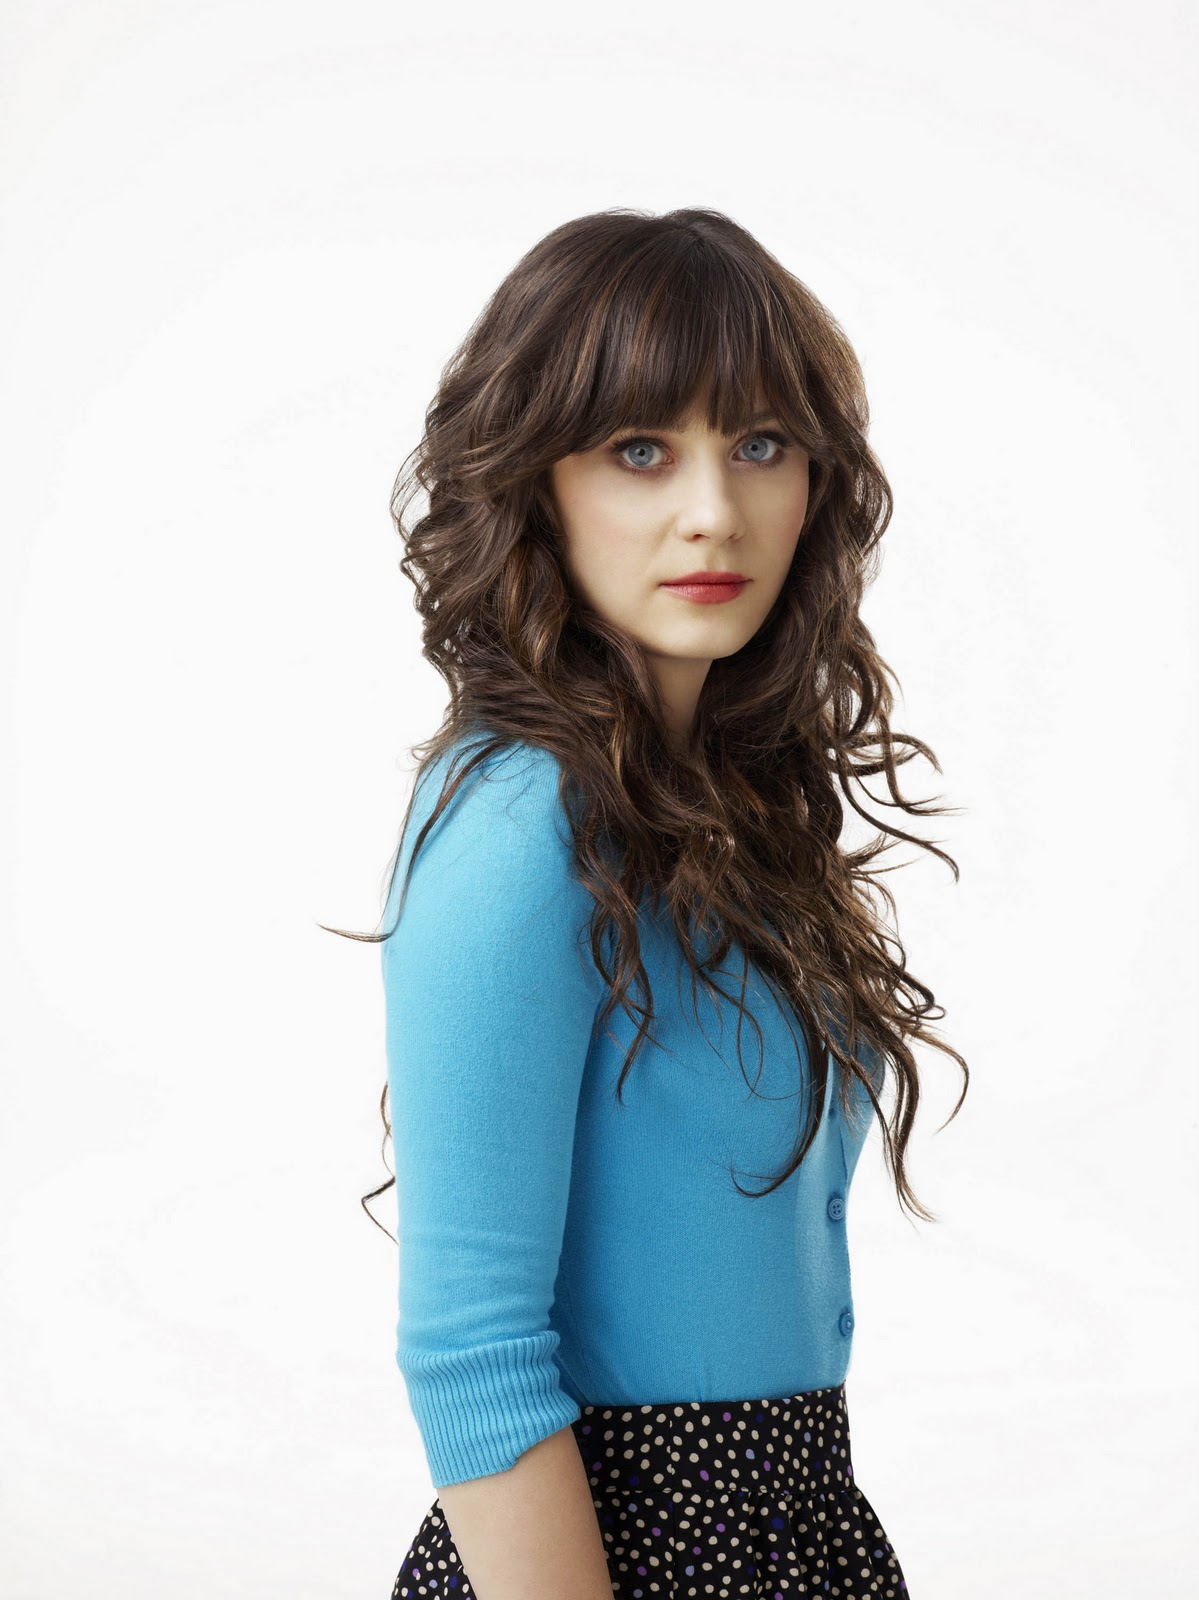 http://4.bp.blogspot.com/-l976jctG5c8/ToO2nr4RLEI/AAAAAAAABXI/JCYd-AixC-s/s1600/The-New-Girl-Promo-zooey-deschanel-25247427-1918-2560.jpg